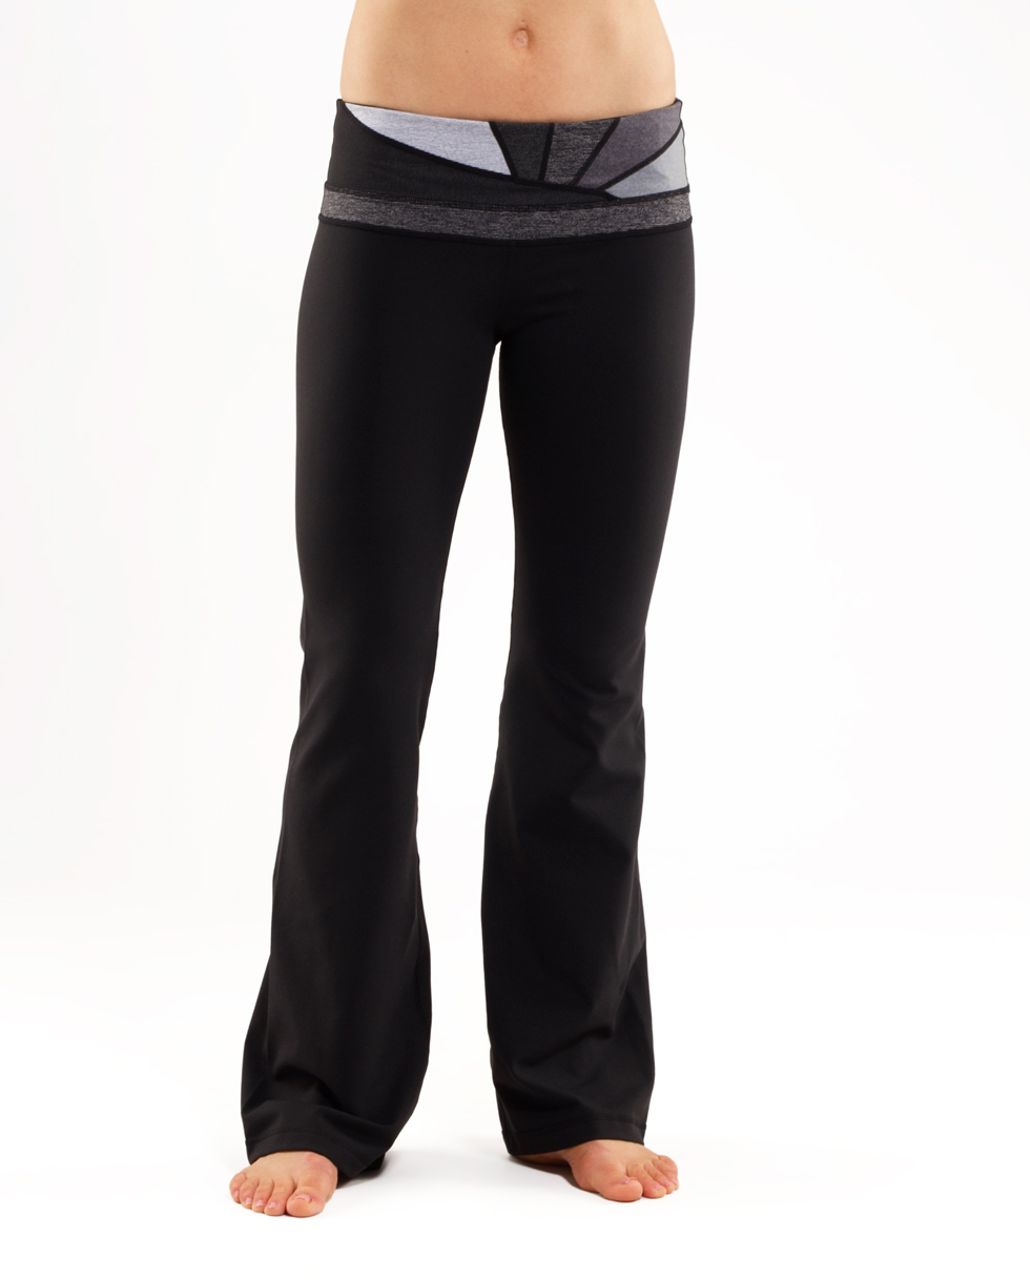 Lululemon Groove Pant (Regular) - Black /  Quilt 25 /  Coal Wee Stripe